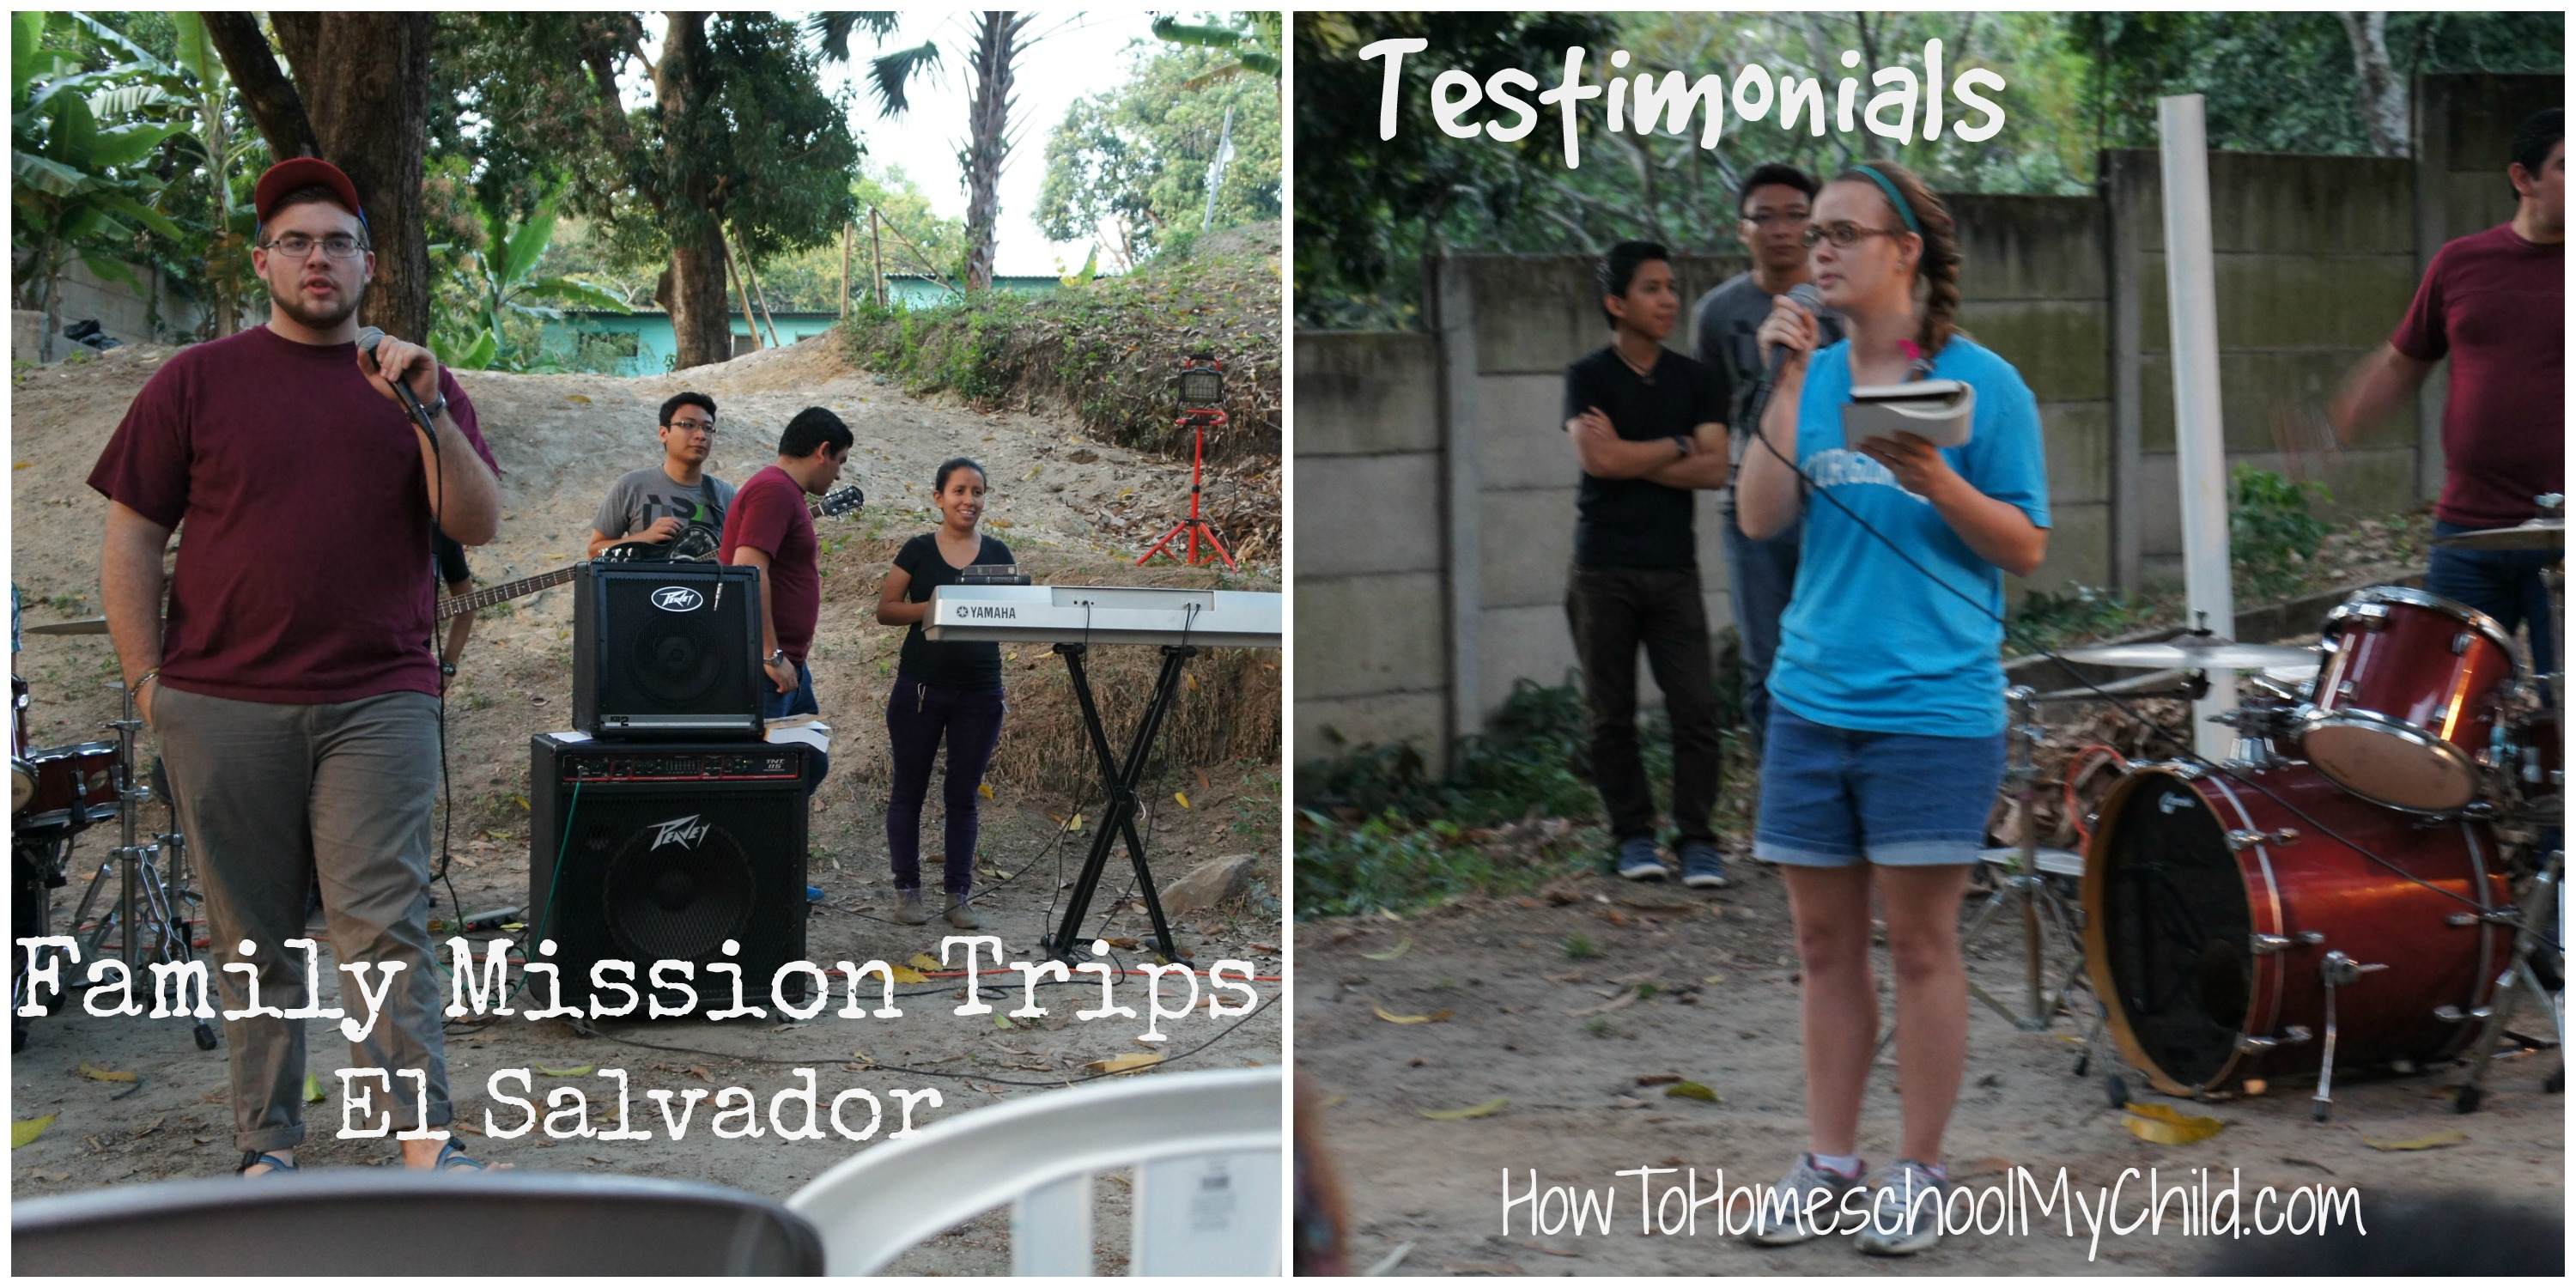 Testimonies during our Outreach of our Family Mission Trips ~ from HowToHomeschoolMyChild.com